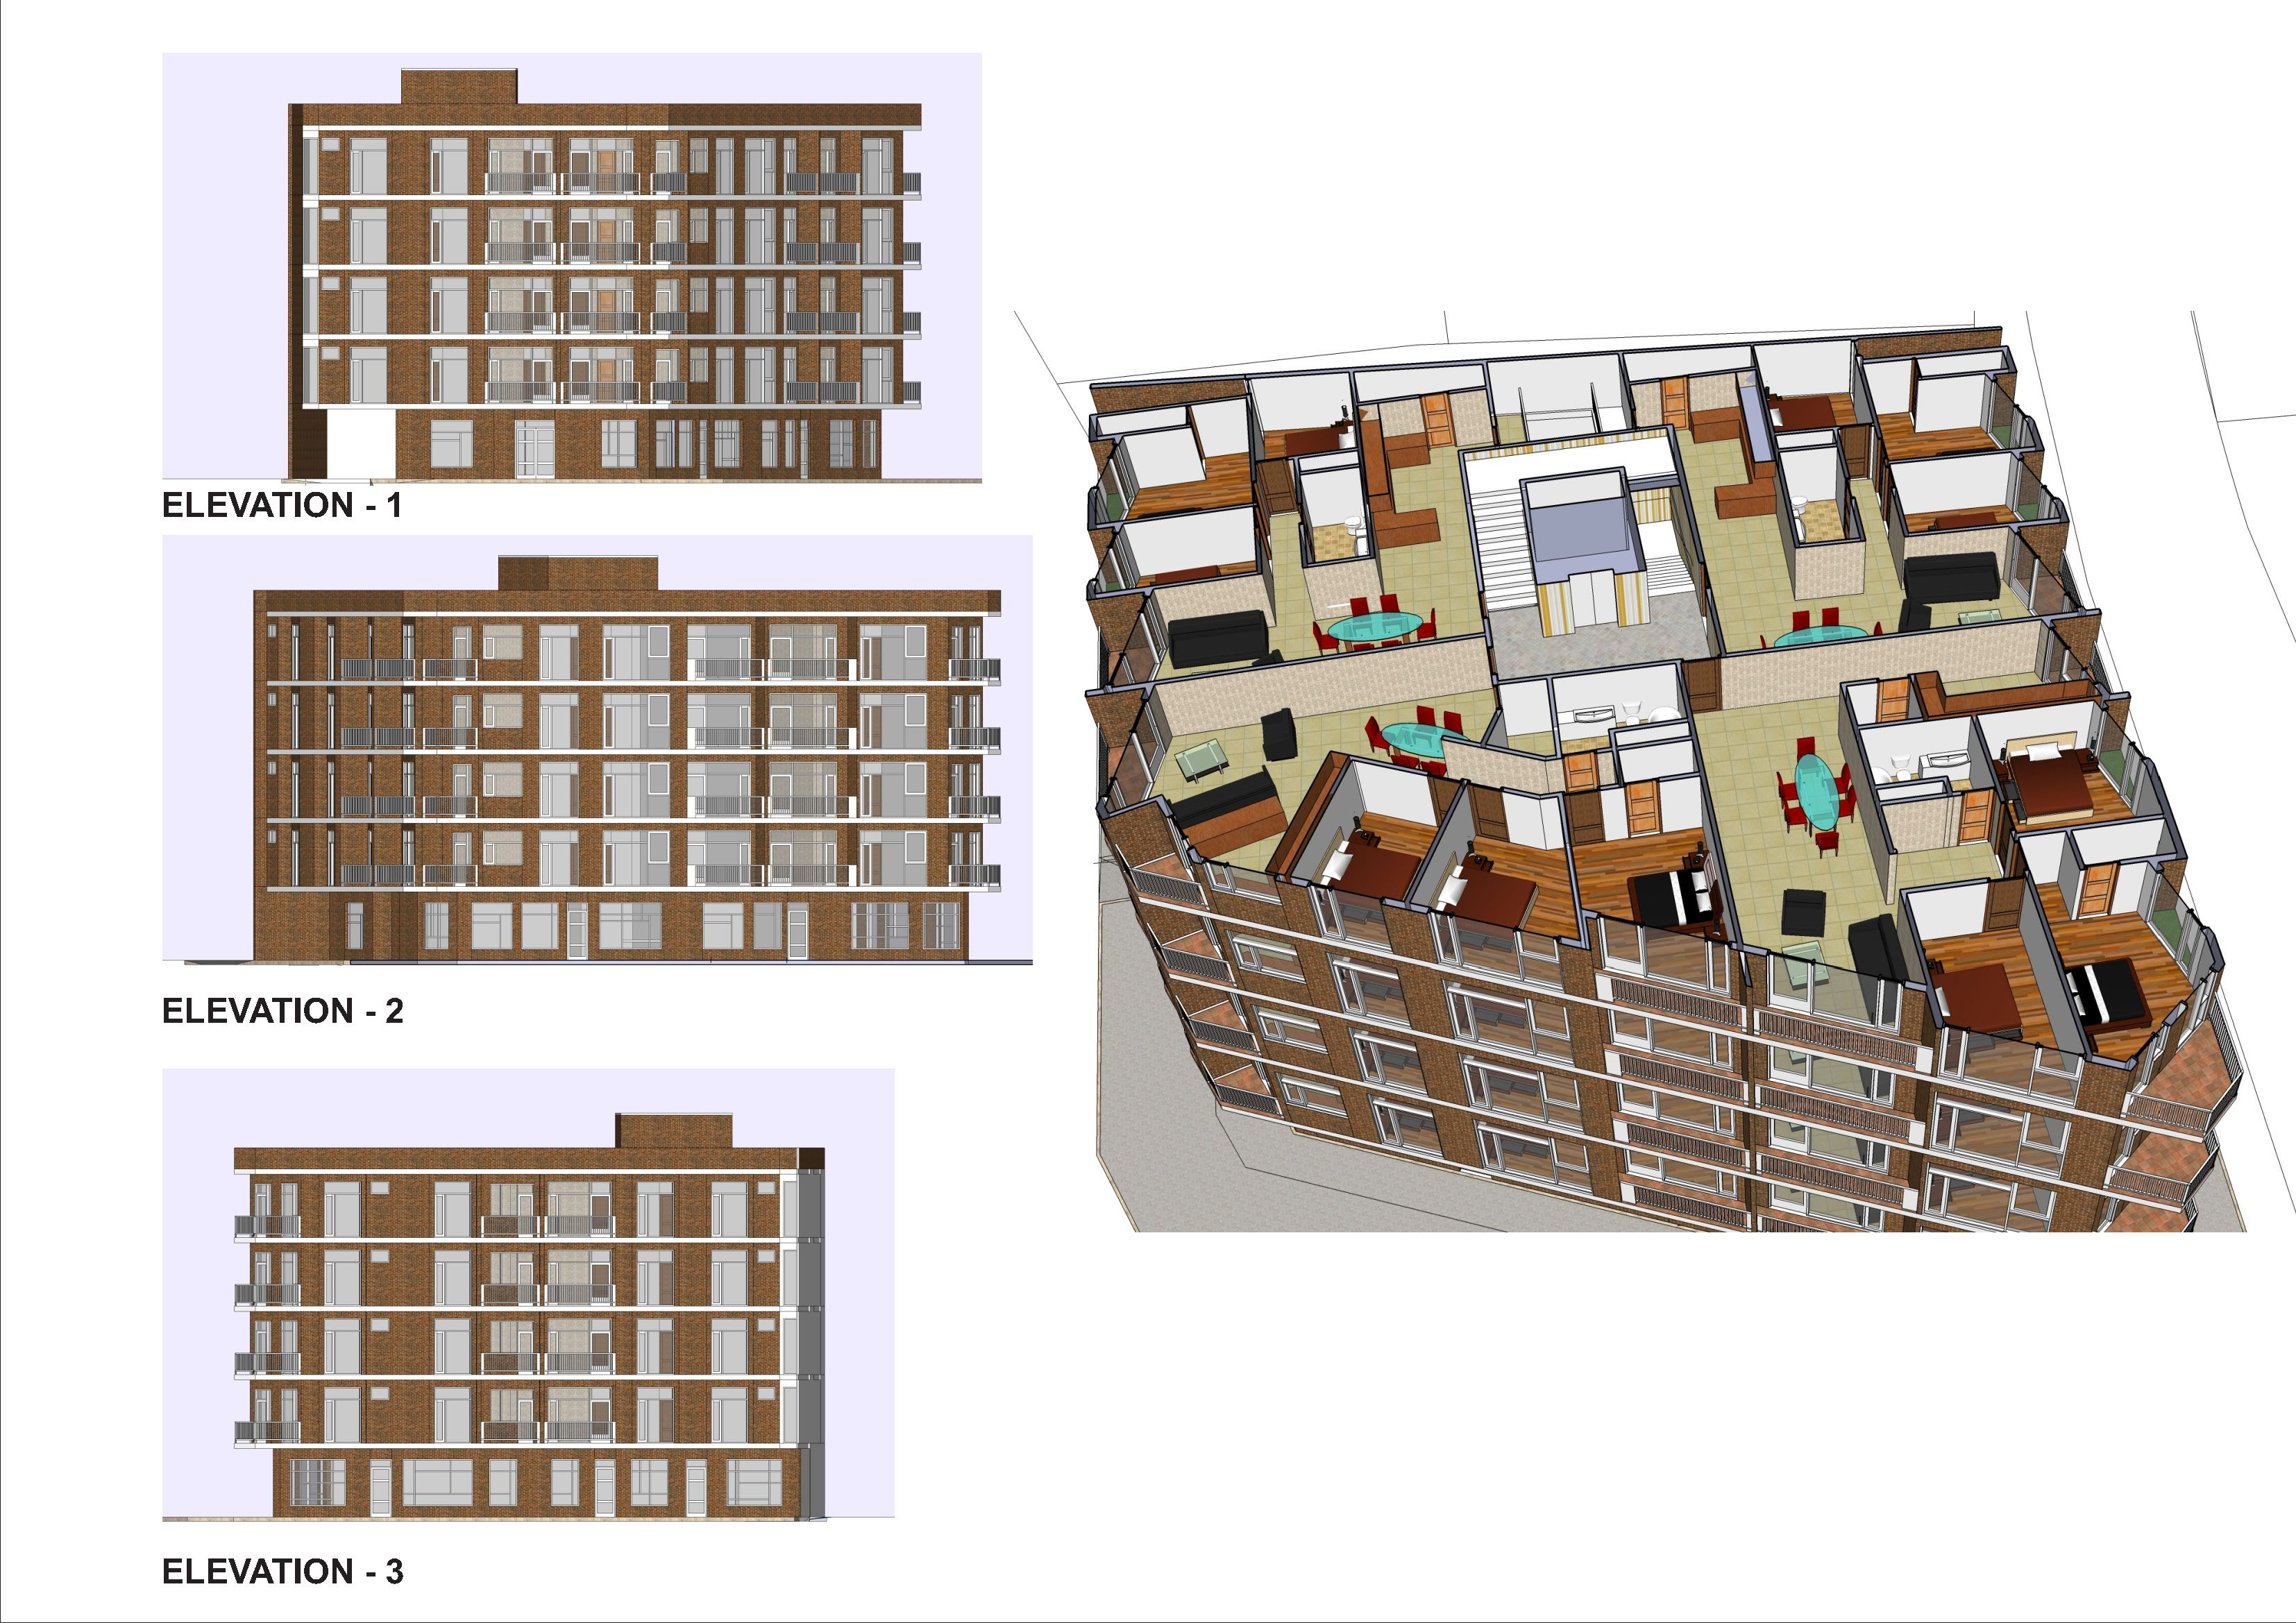 Apartment building plans location aksaray turkey new for 4 apartment building plans